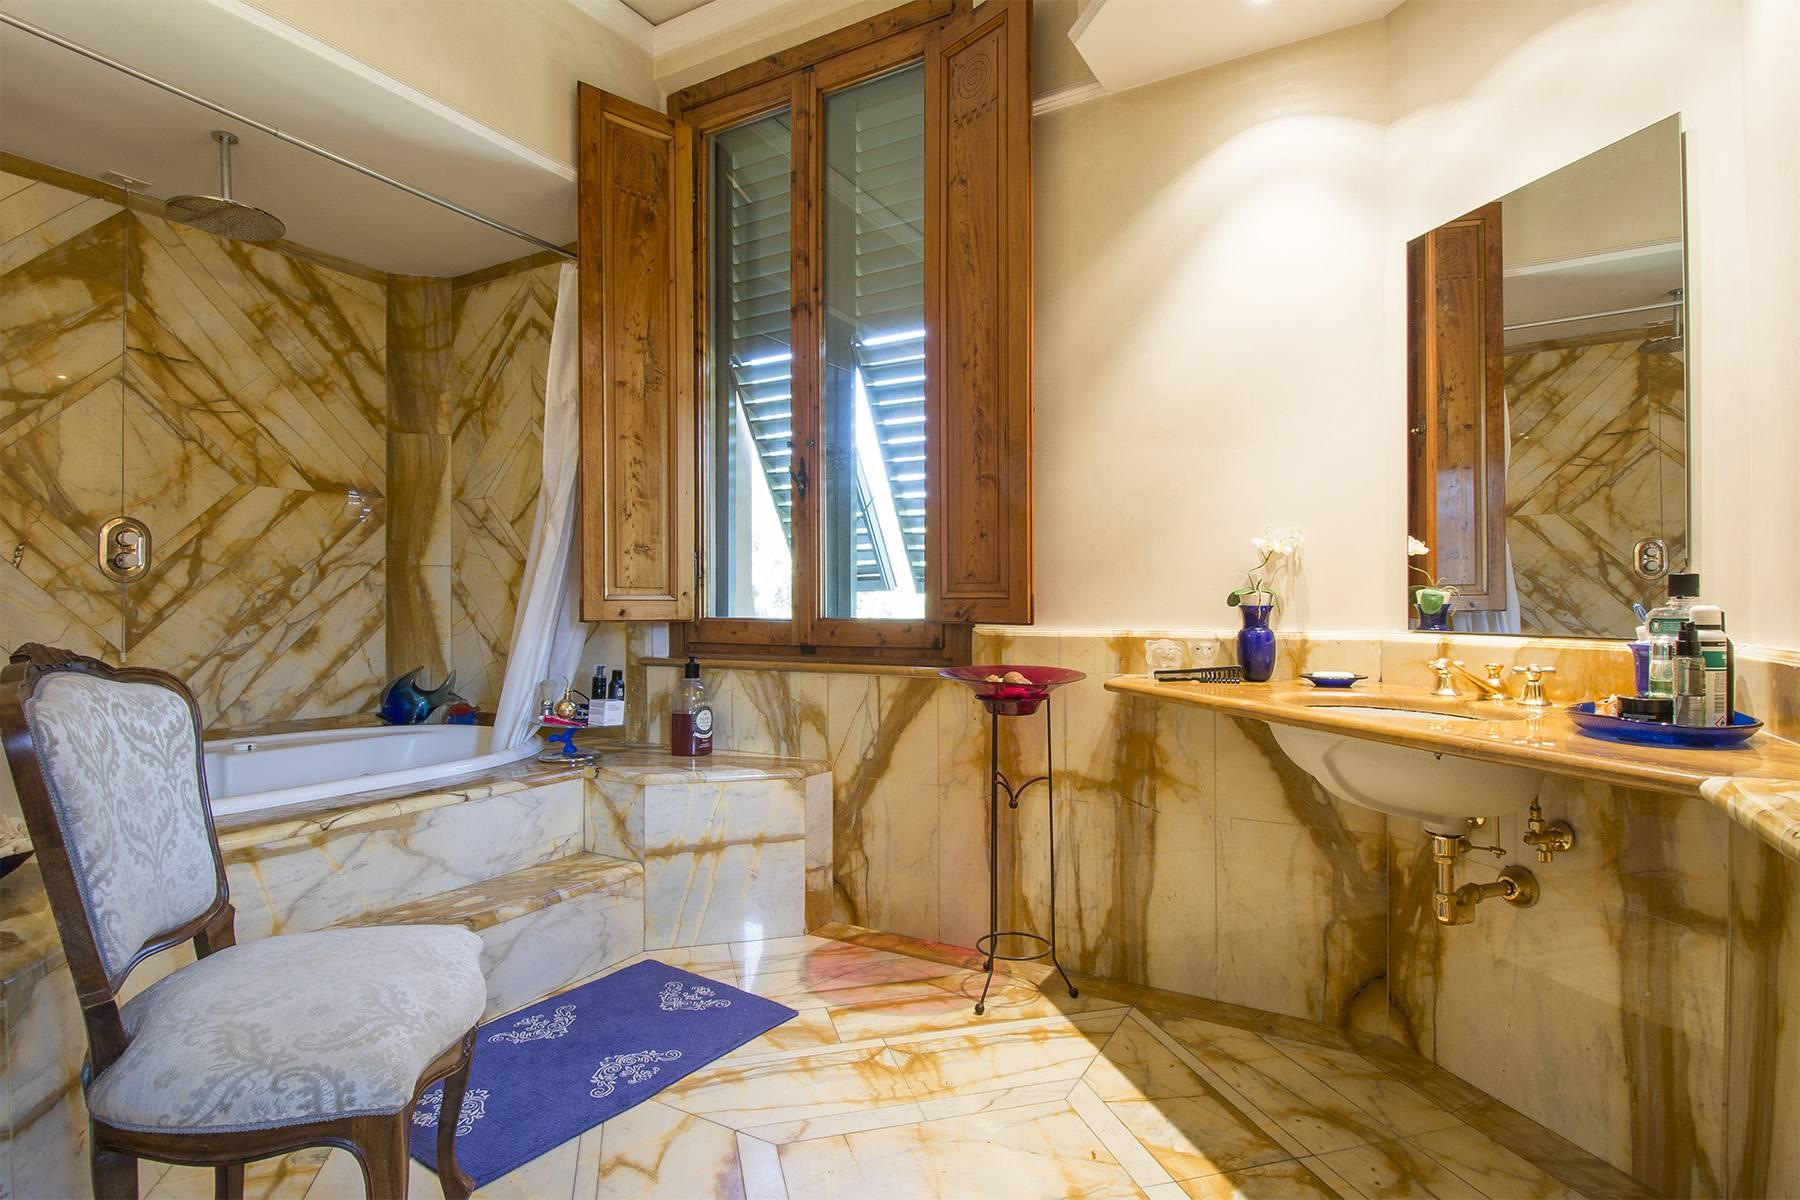 Luxury Art Nouveau Villa in the heart of Montecatini Terme - 19